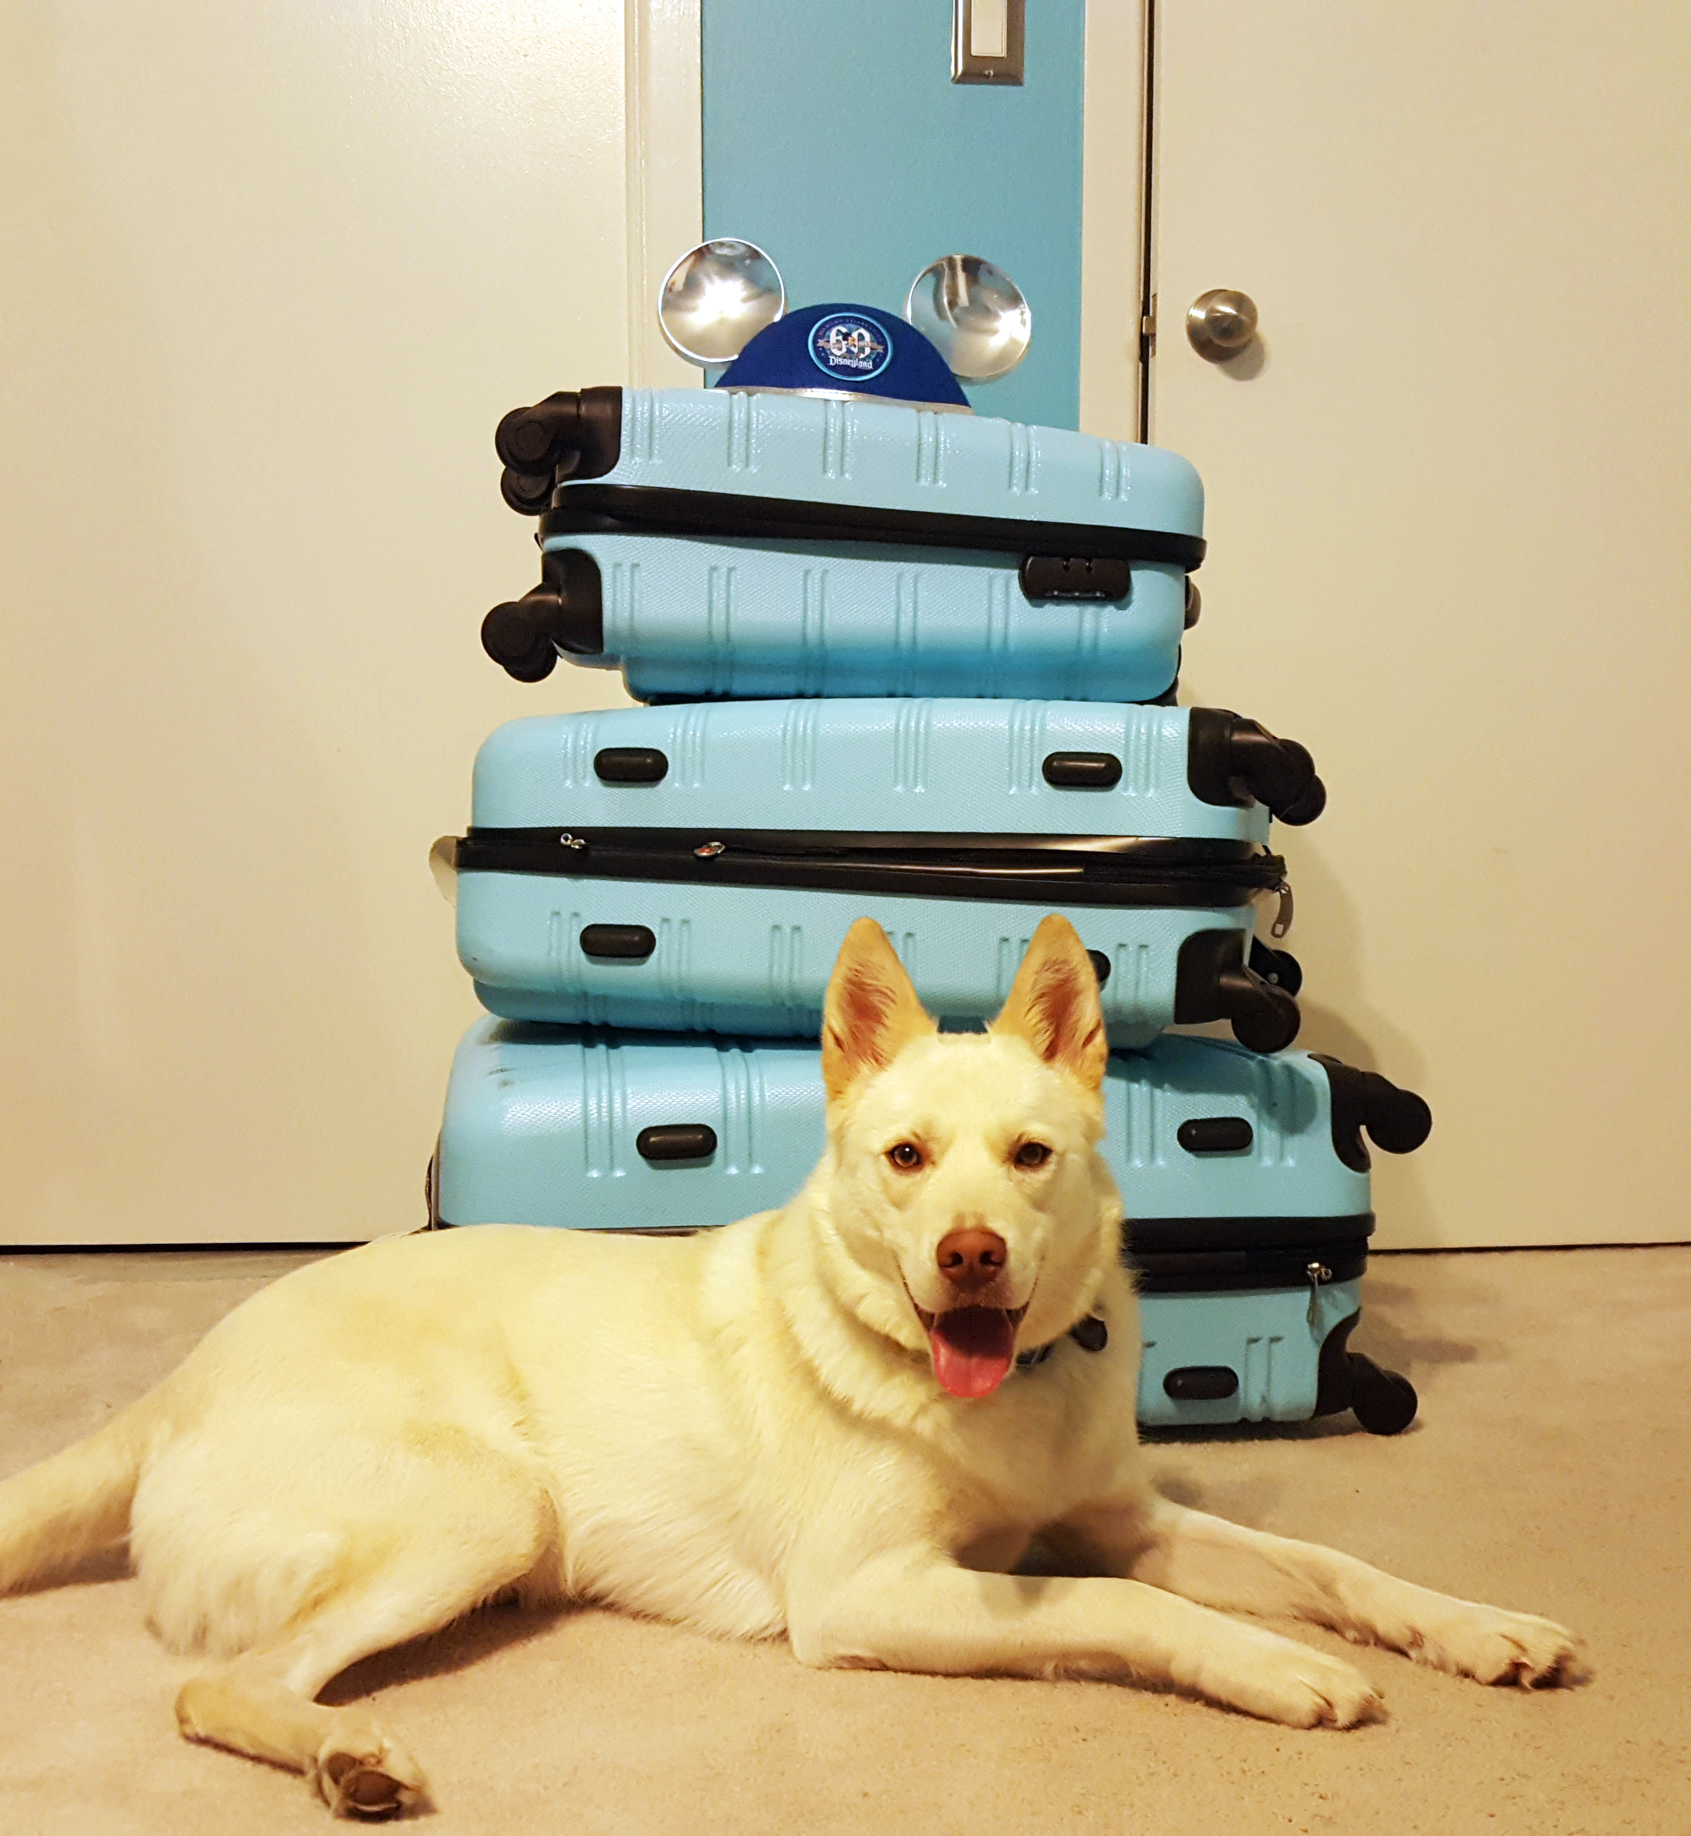 Suitcases and a dog